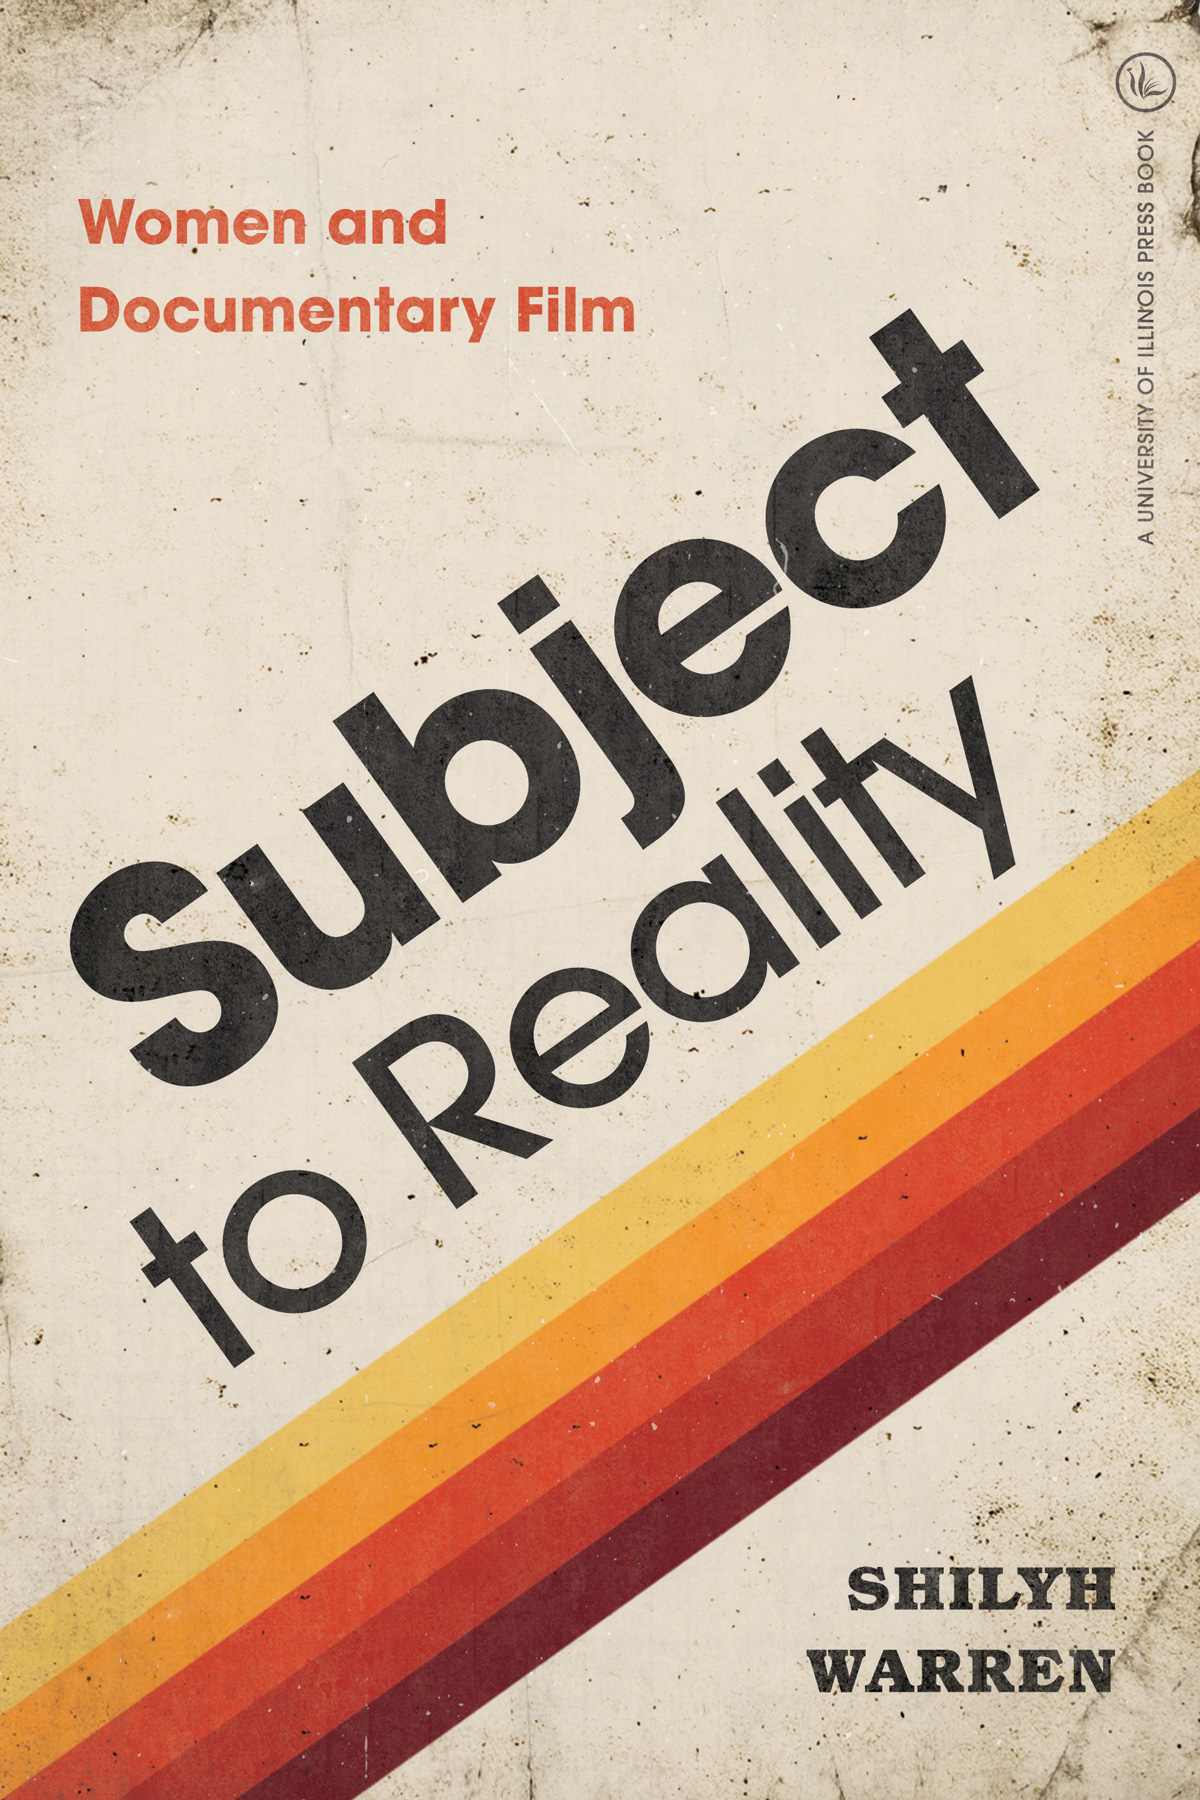 Subject to Reality Women and Documentary Film By Shilyh Warren, University of Illinois Press, 2019